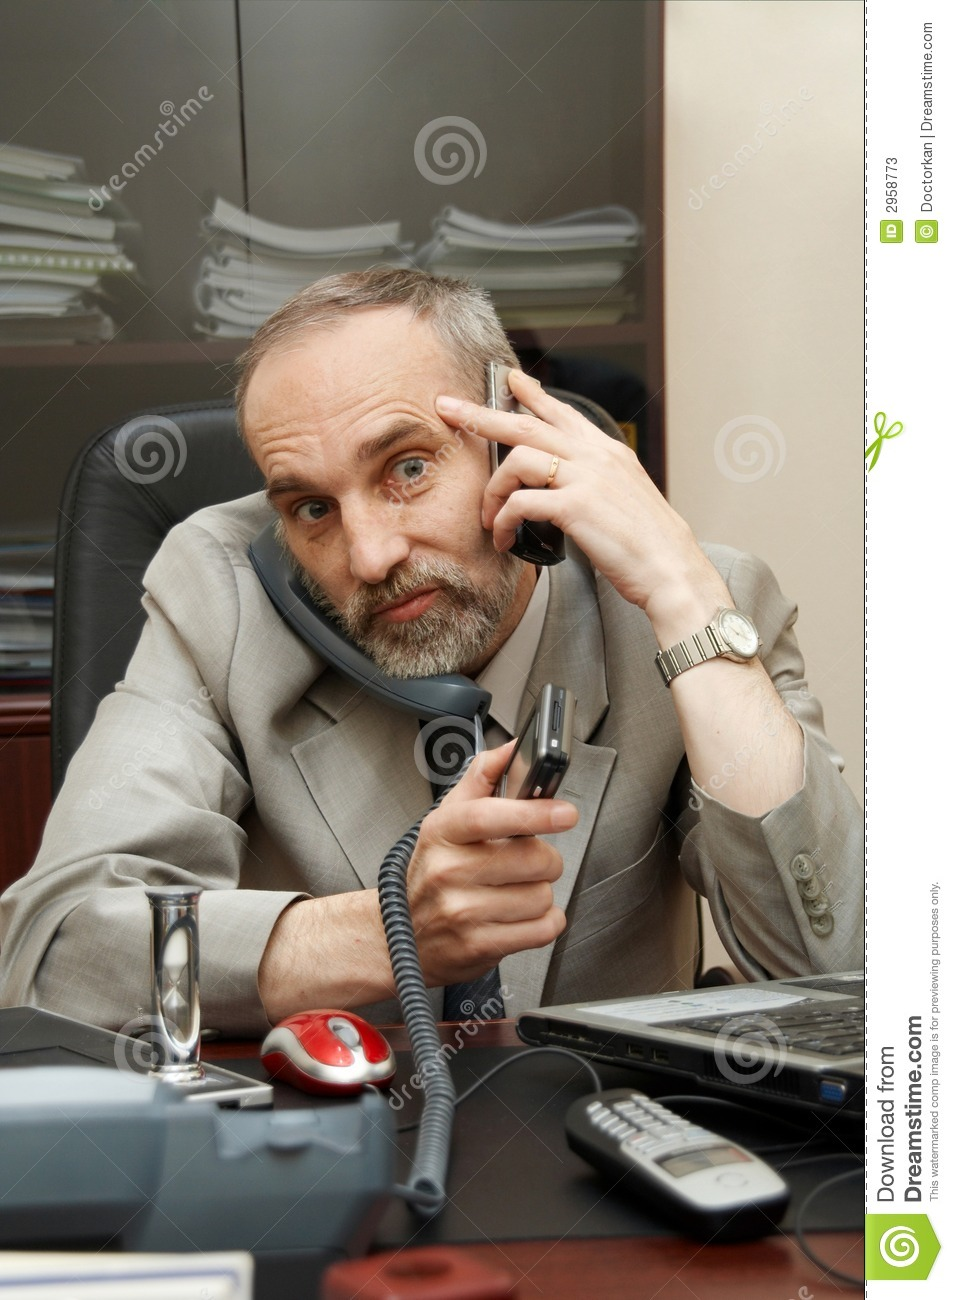 Busy, Hard Working Businessman Stock Photos - Image: 2958773